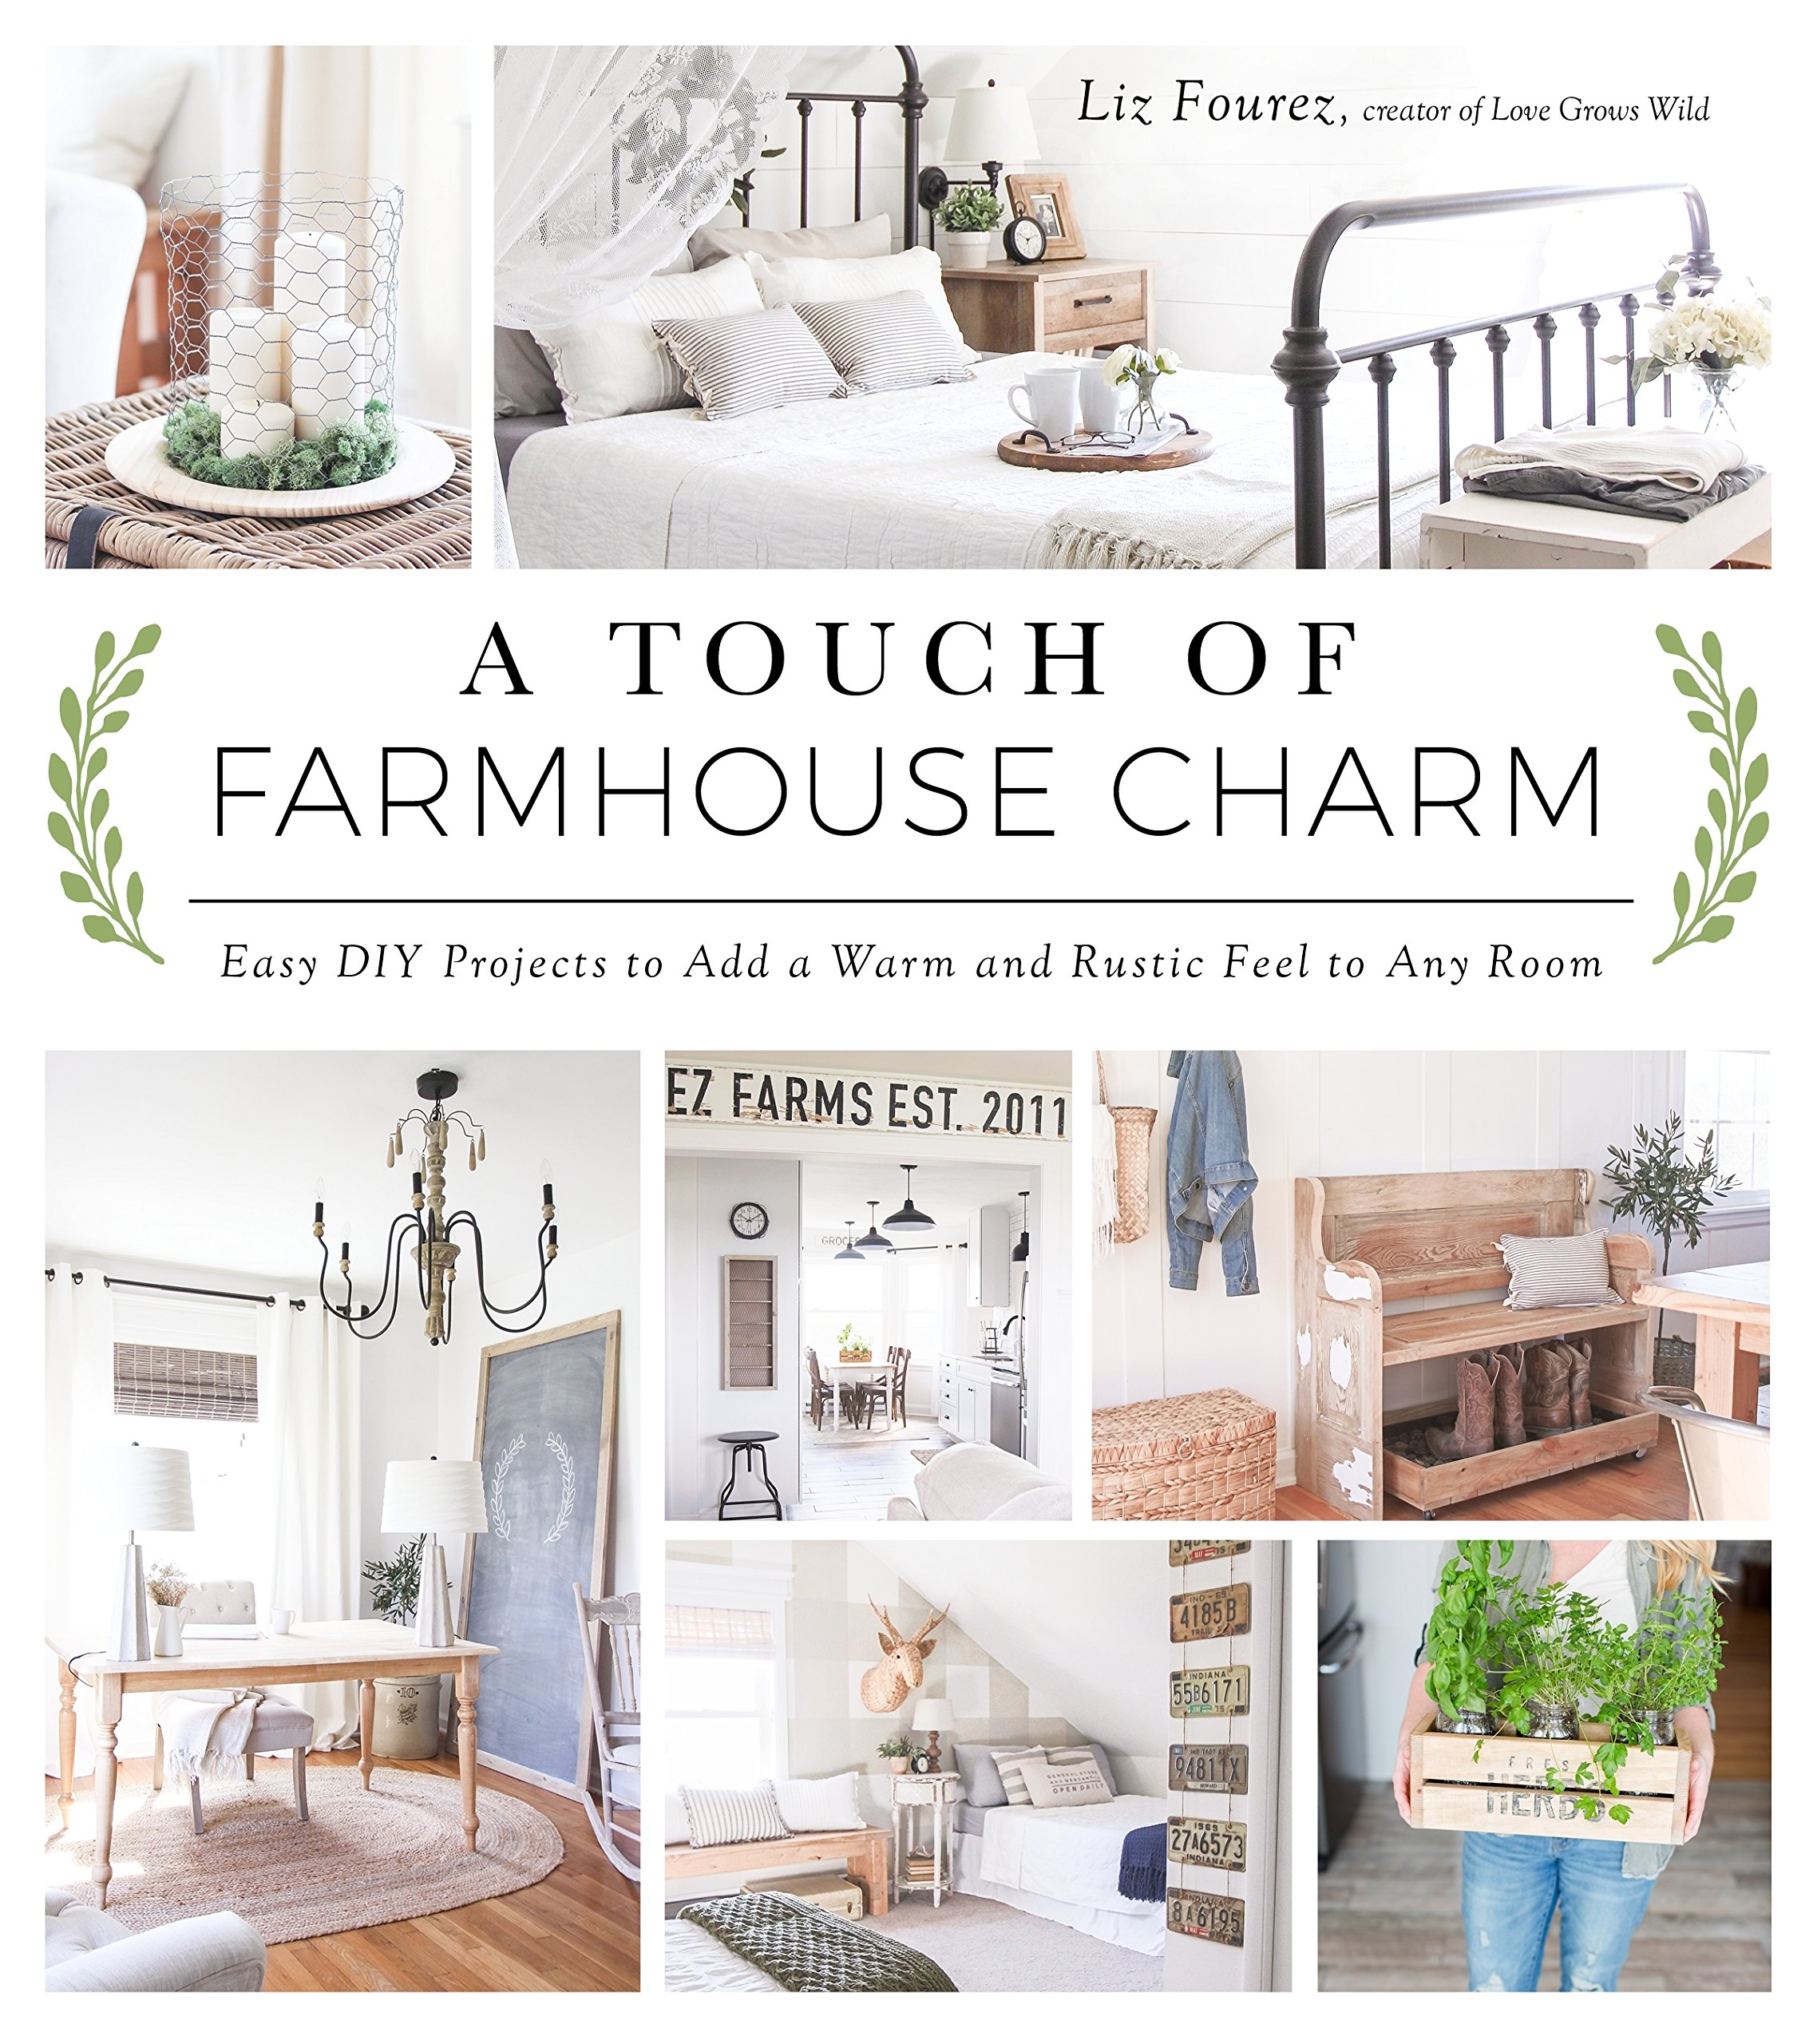 A Touch Of Farmhouse Charm: Easy DIY Projects To Add A Warm And Rustic Feel  To Any Room: Liz Fourez: 9781624142925: Amazon.com: Books